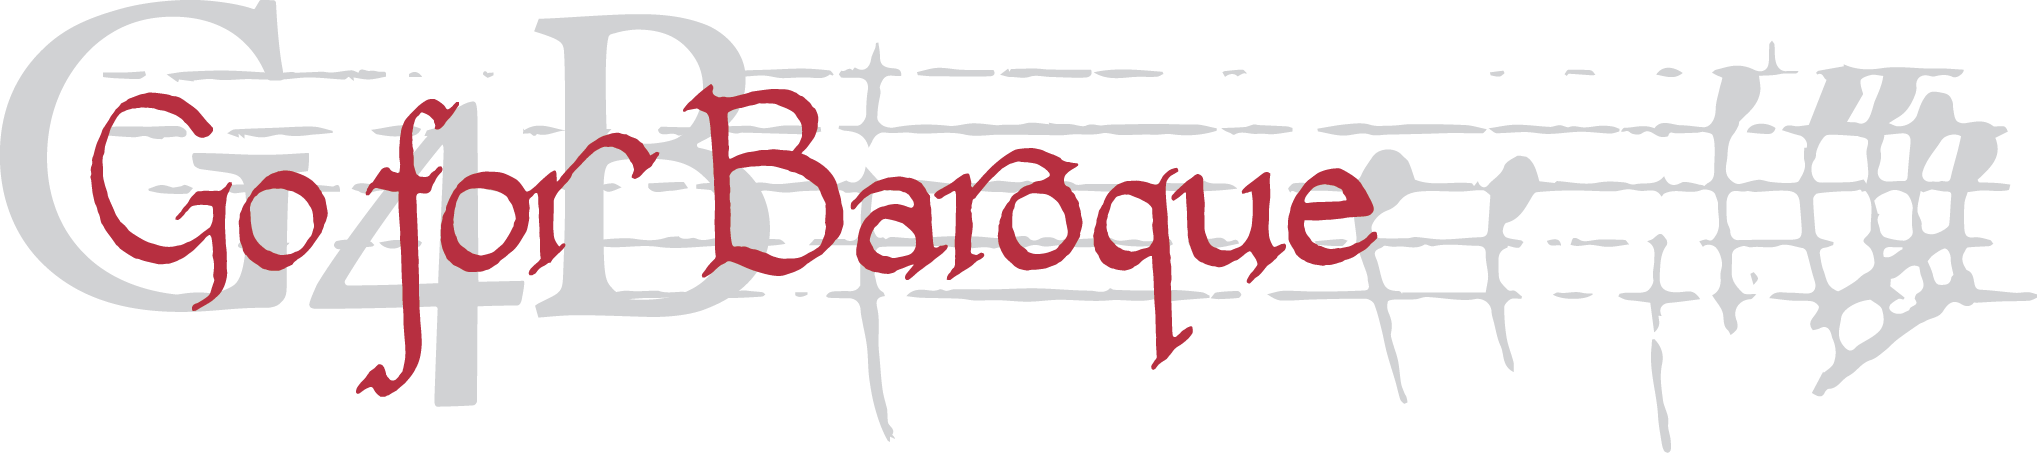 Go for Baroque